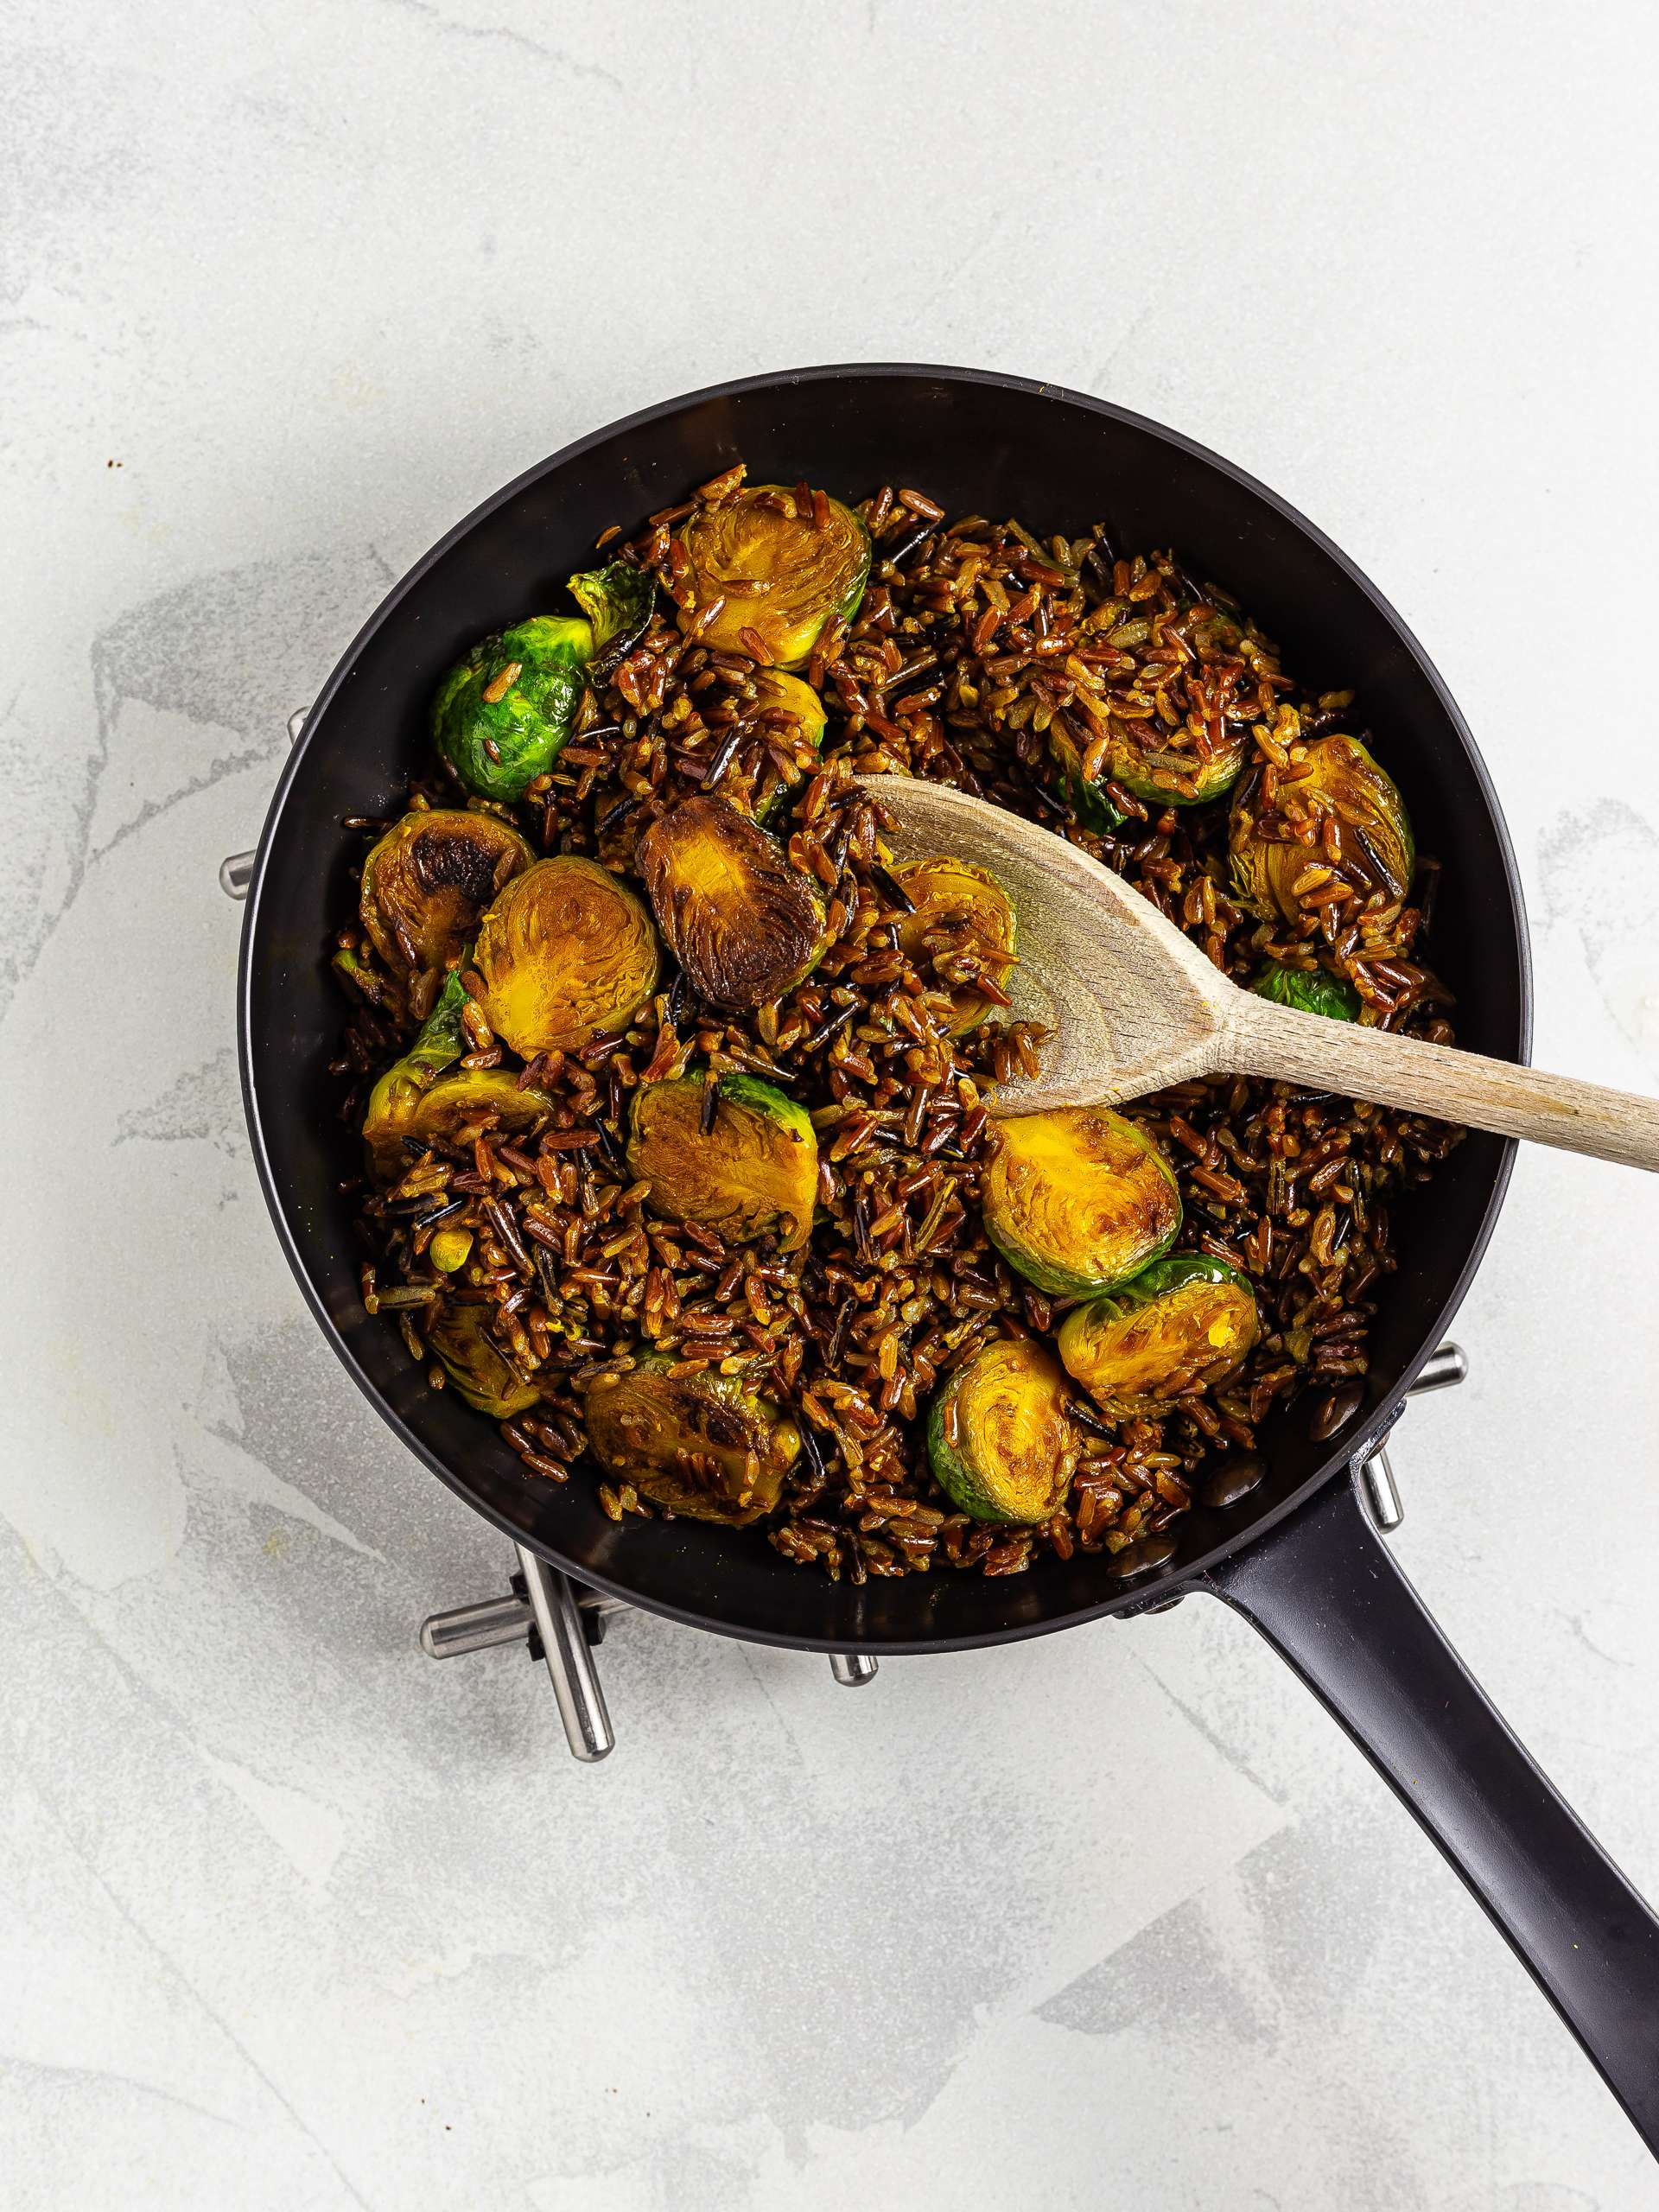 red rice with brussel sprouts in a skillet